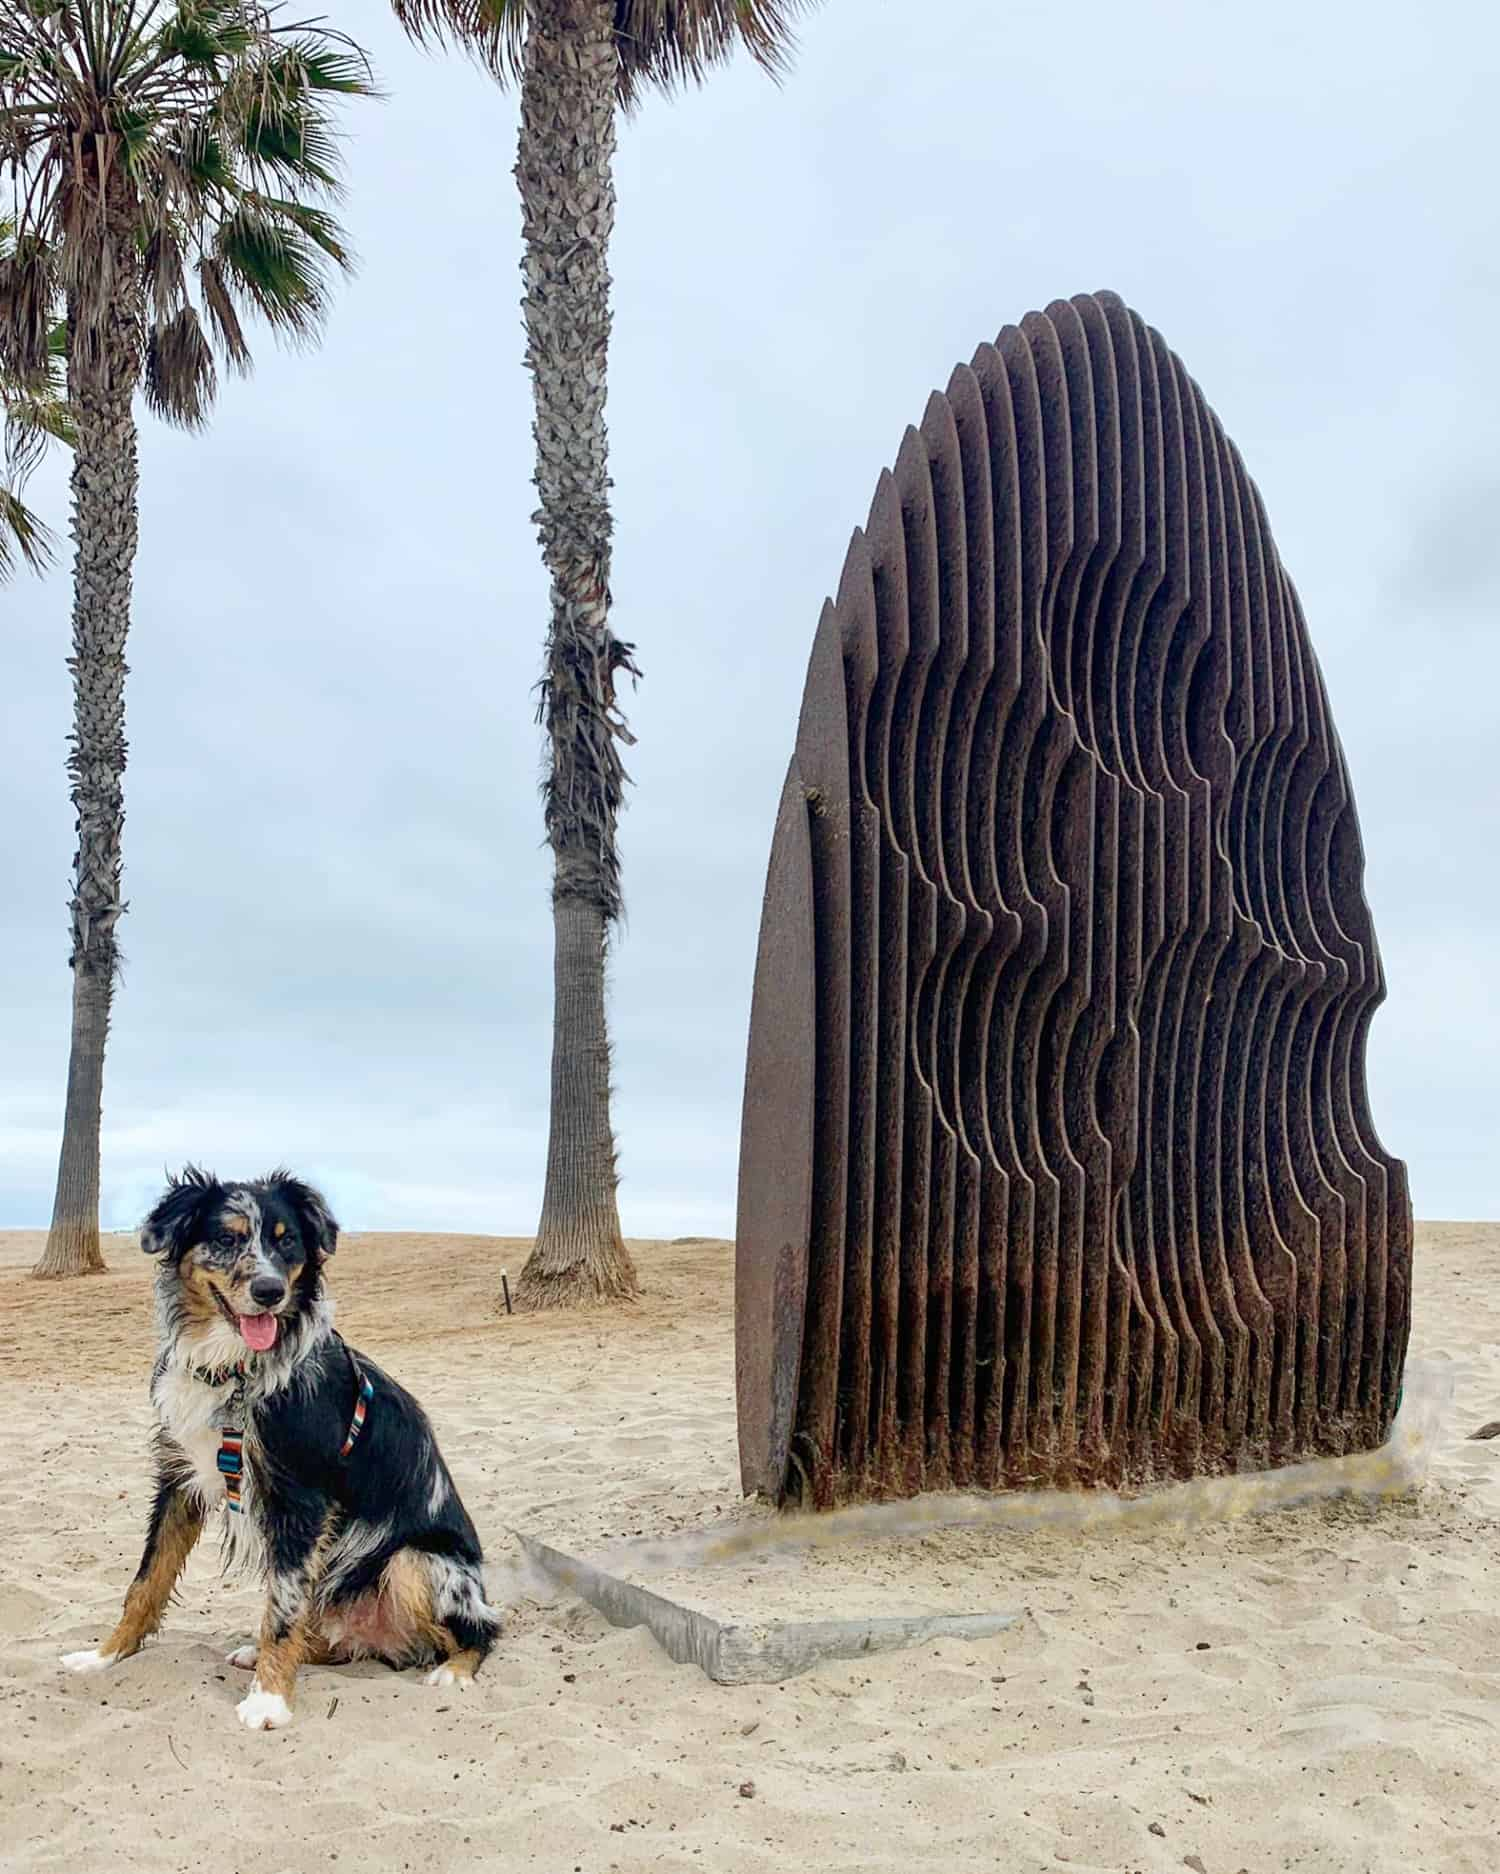 Black and white dog sitting on a beach beside a surf board statue